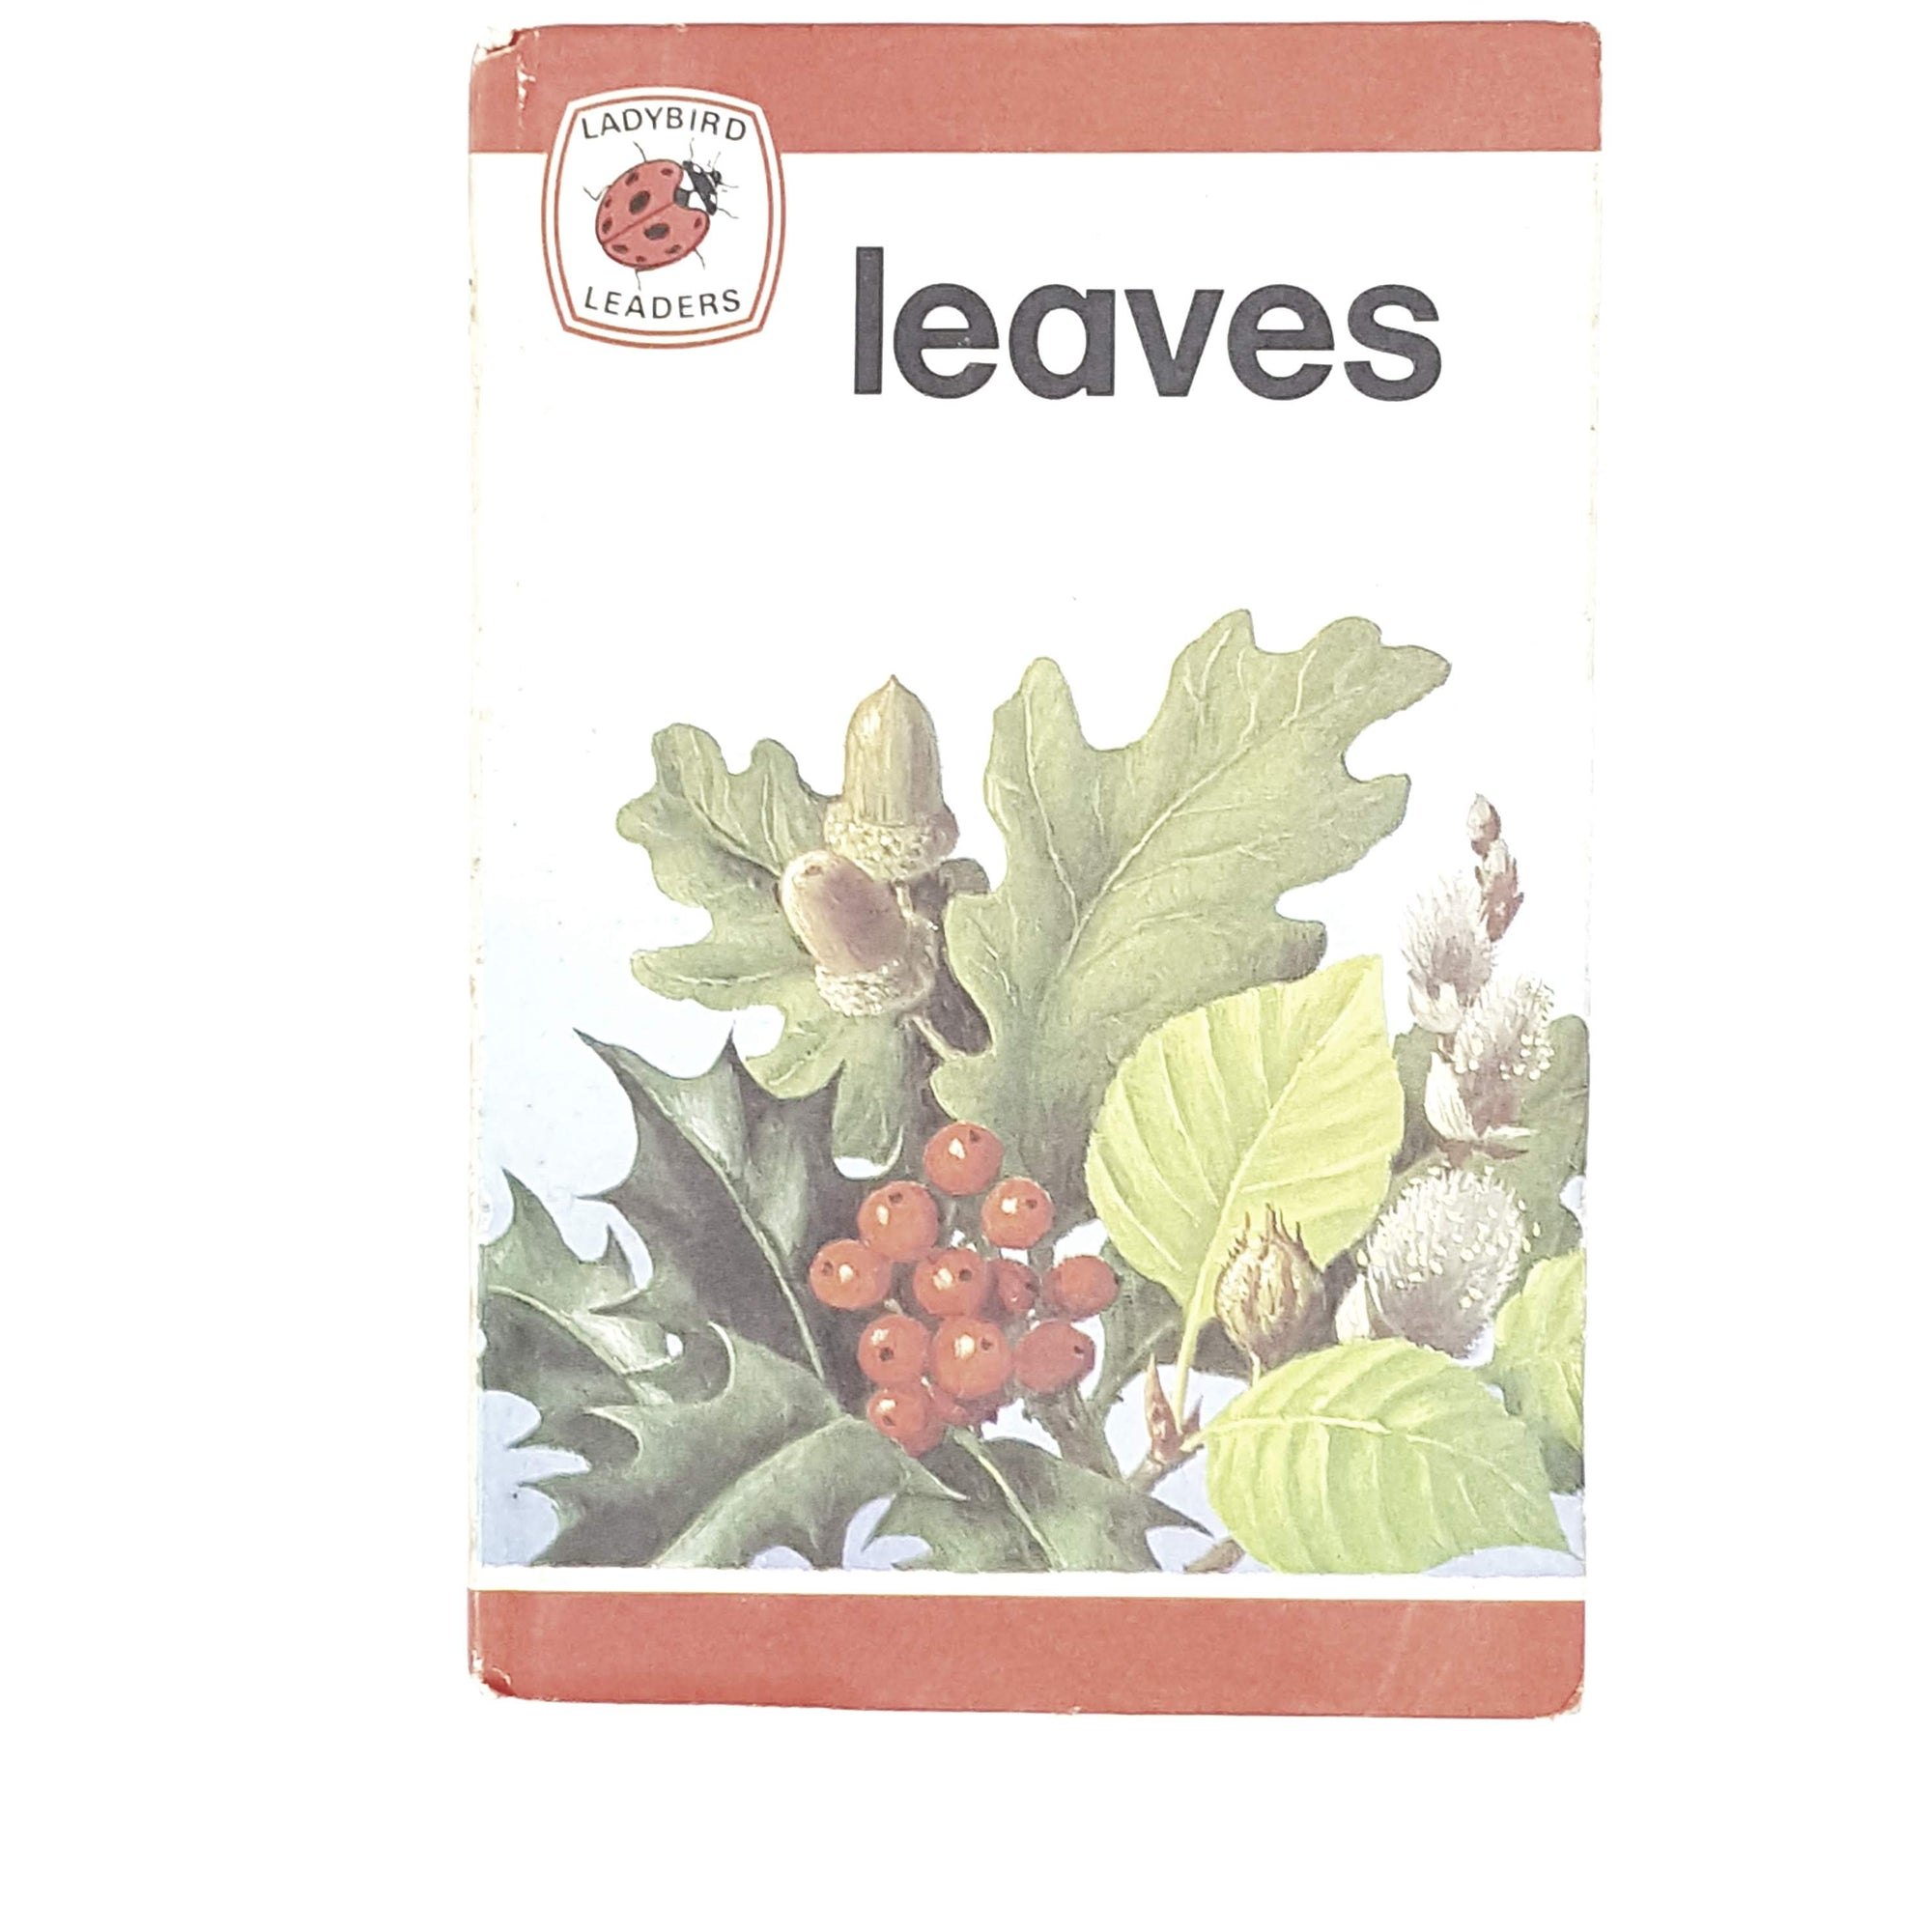 ladybird-leaders-leaves-1975-country-house-library